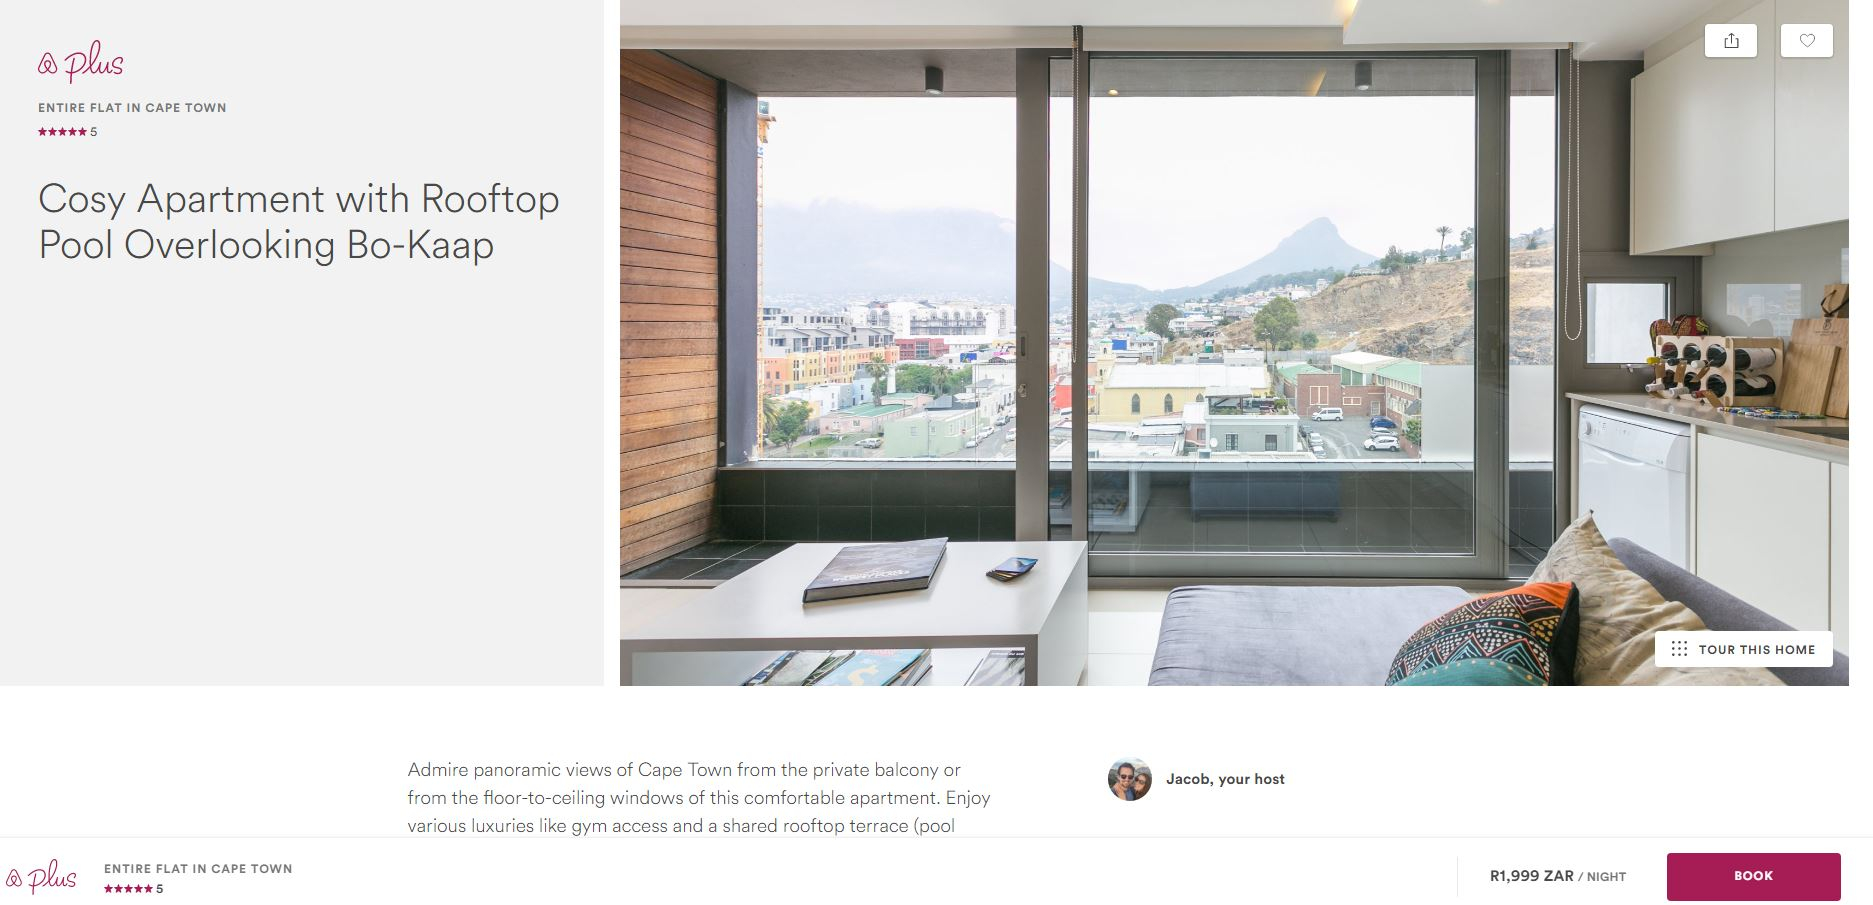 Airbnb Plus Home - Cape Town - photo by Lucia Pinto